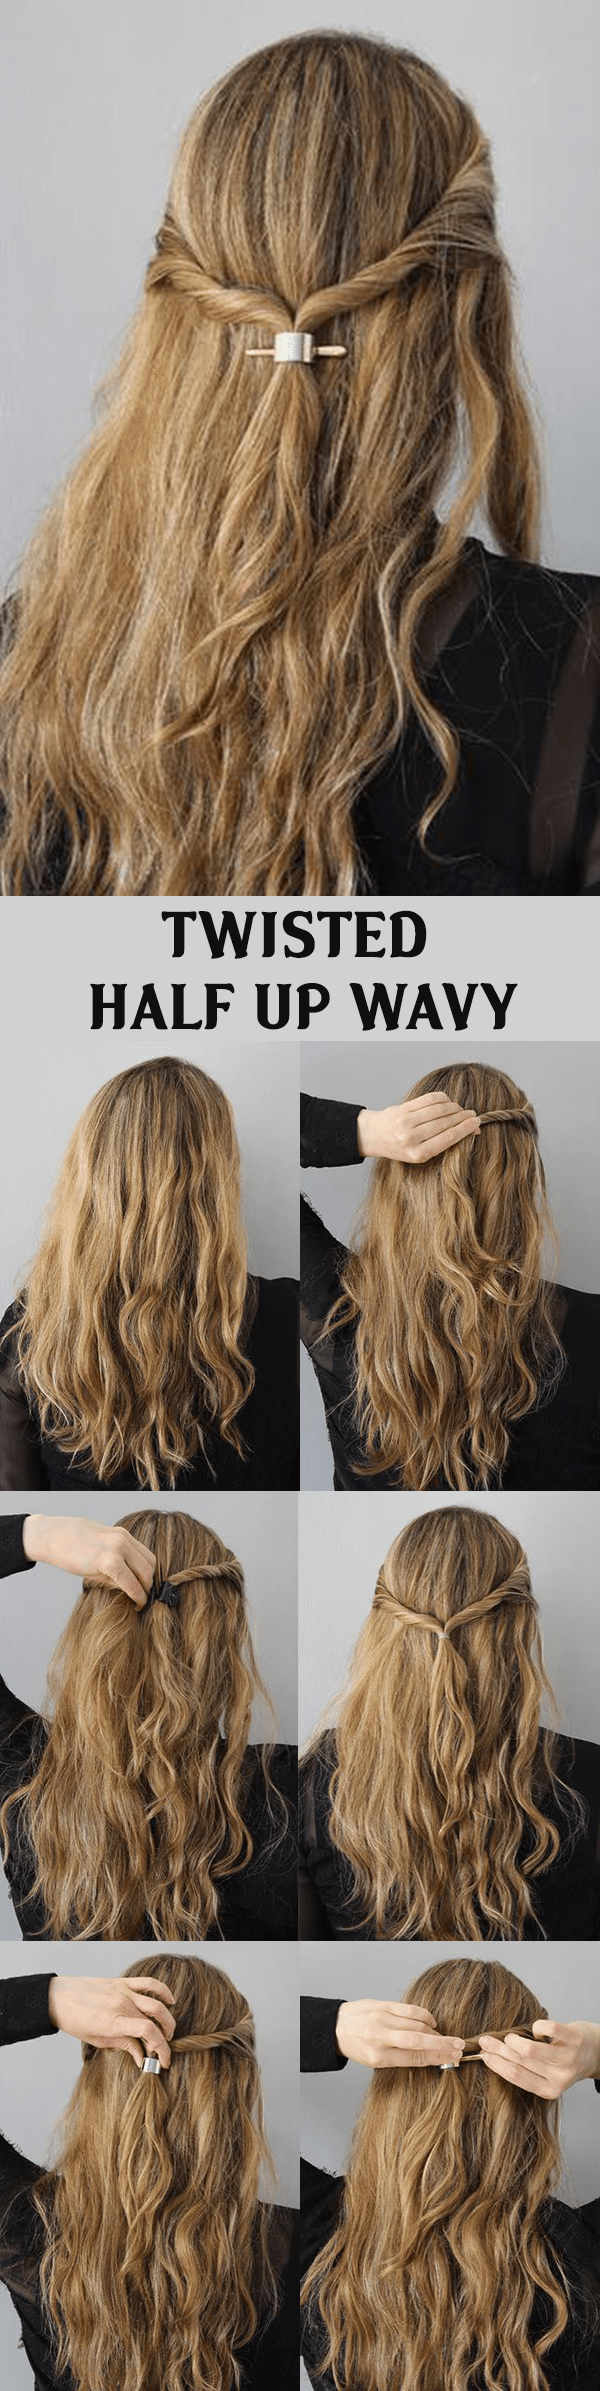 TWISTED HALF UP WAVY HAIRSTYLE